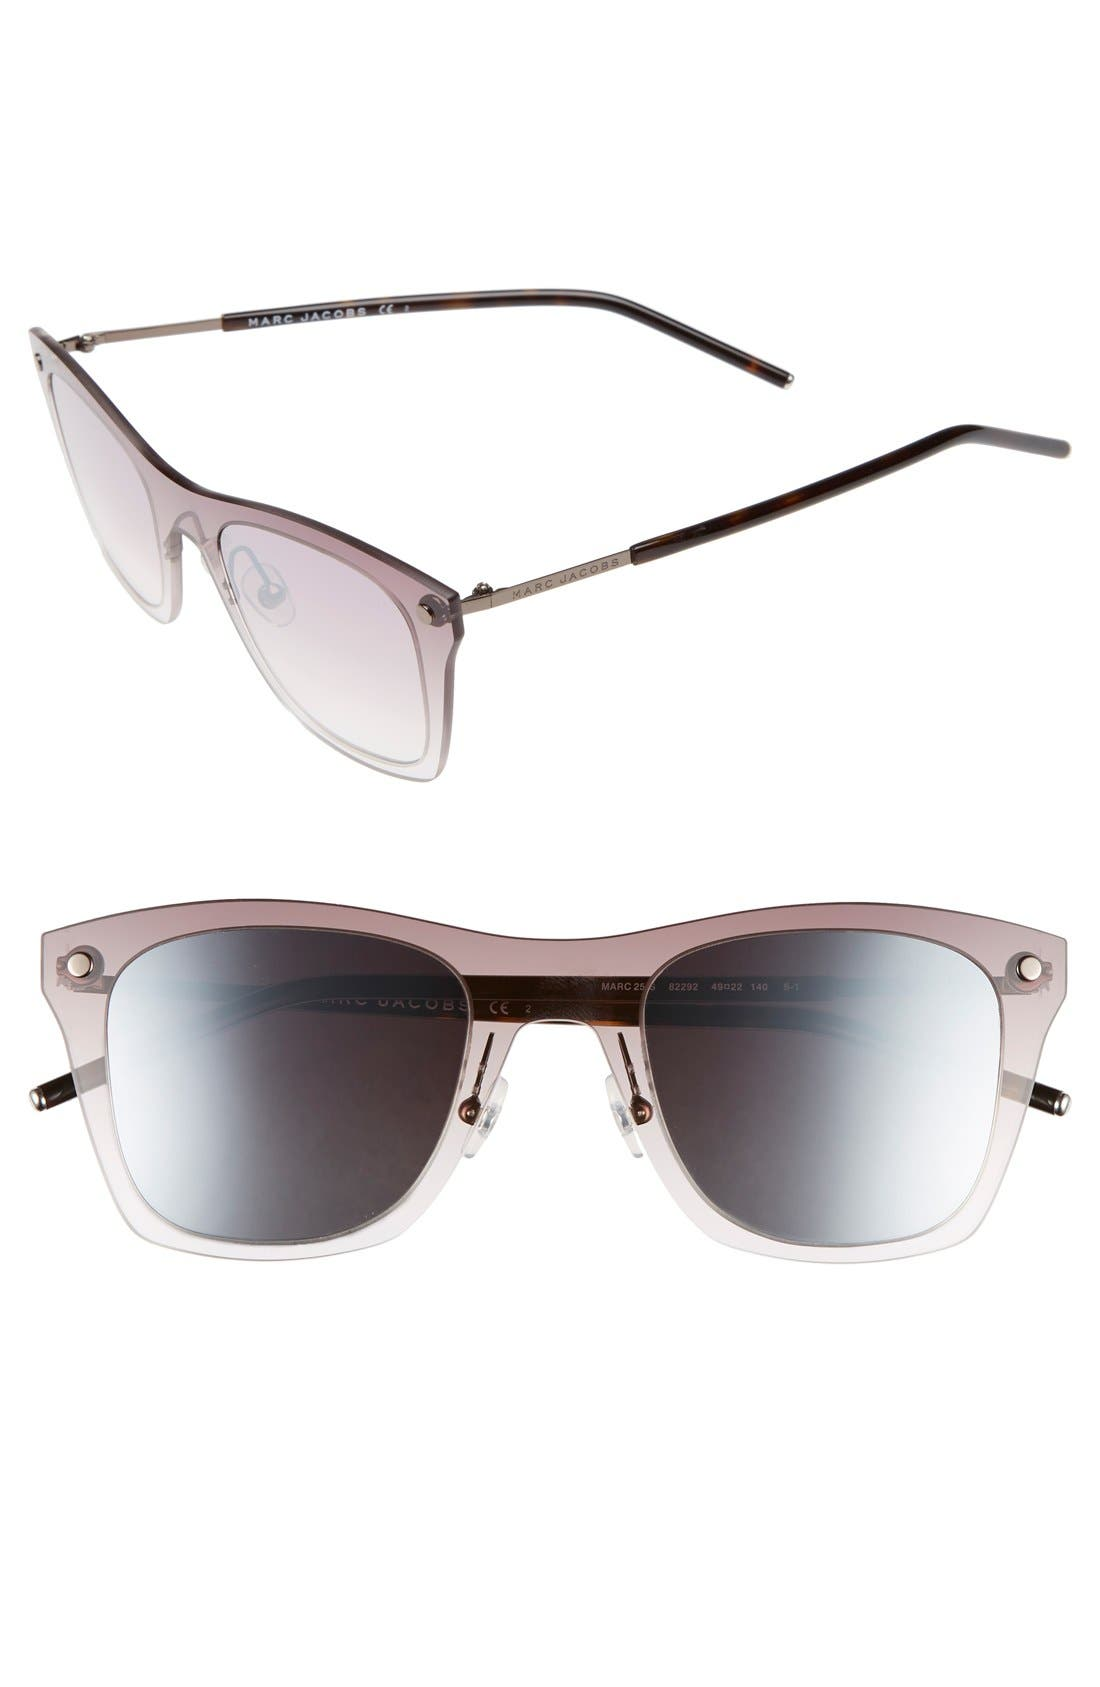 MARC JACOBS 49mm Retro Sunglasses